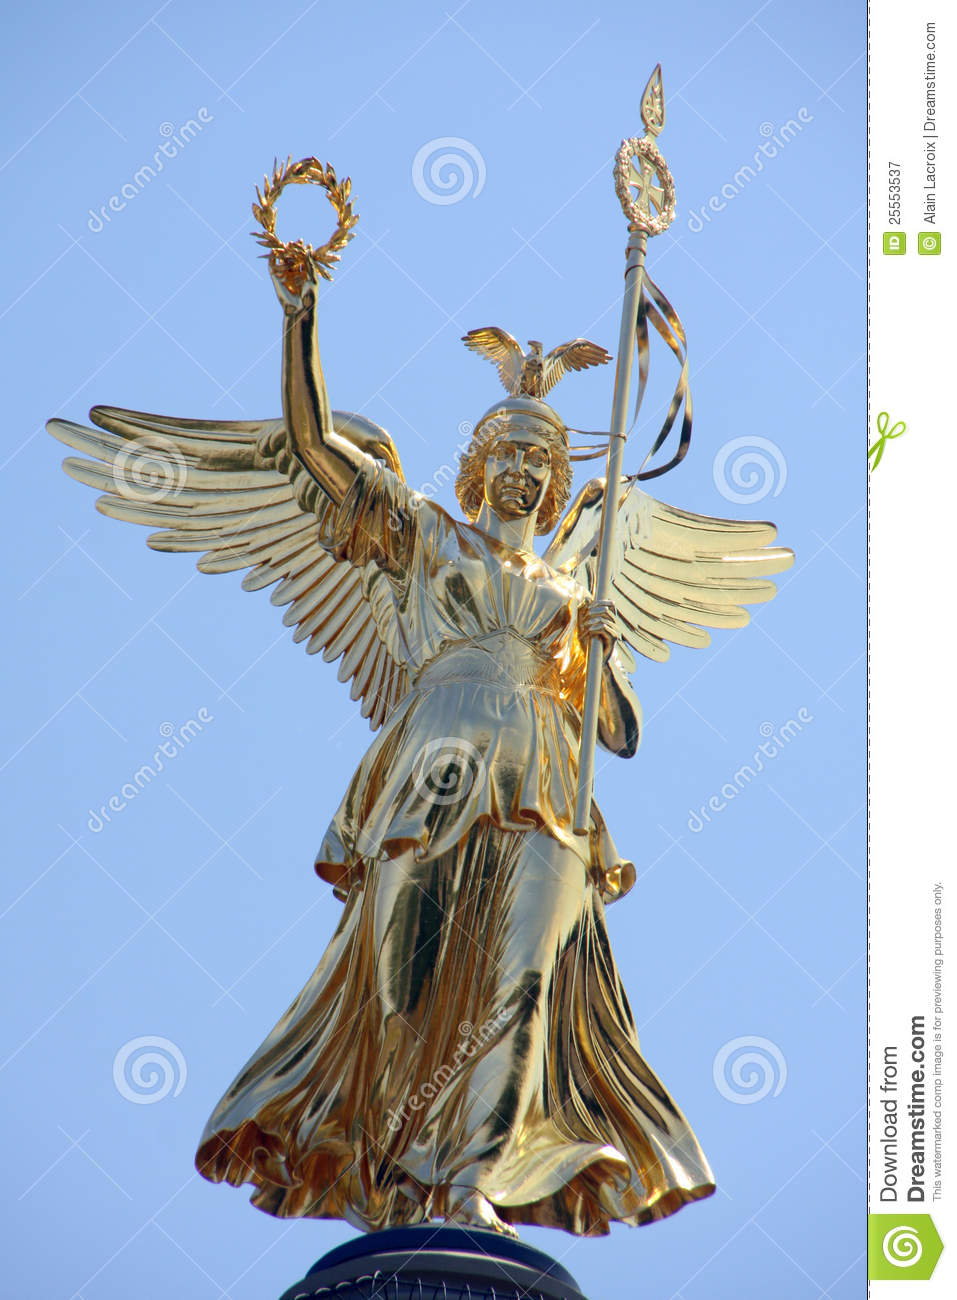 Victory Statue Royalty Free Stock Photography Image 25553537